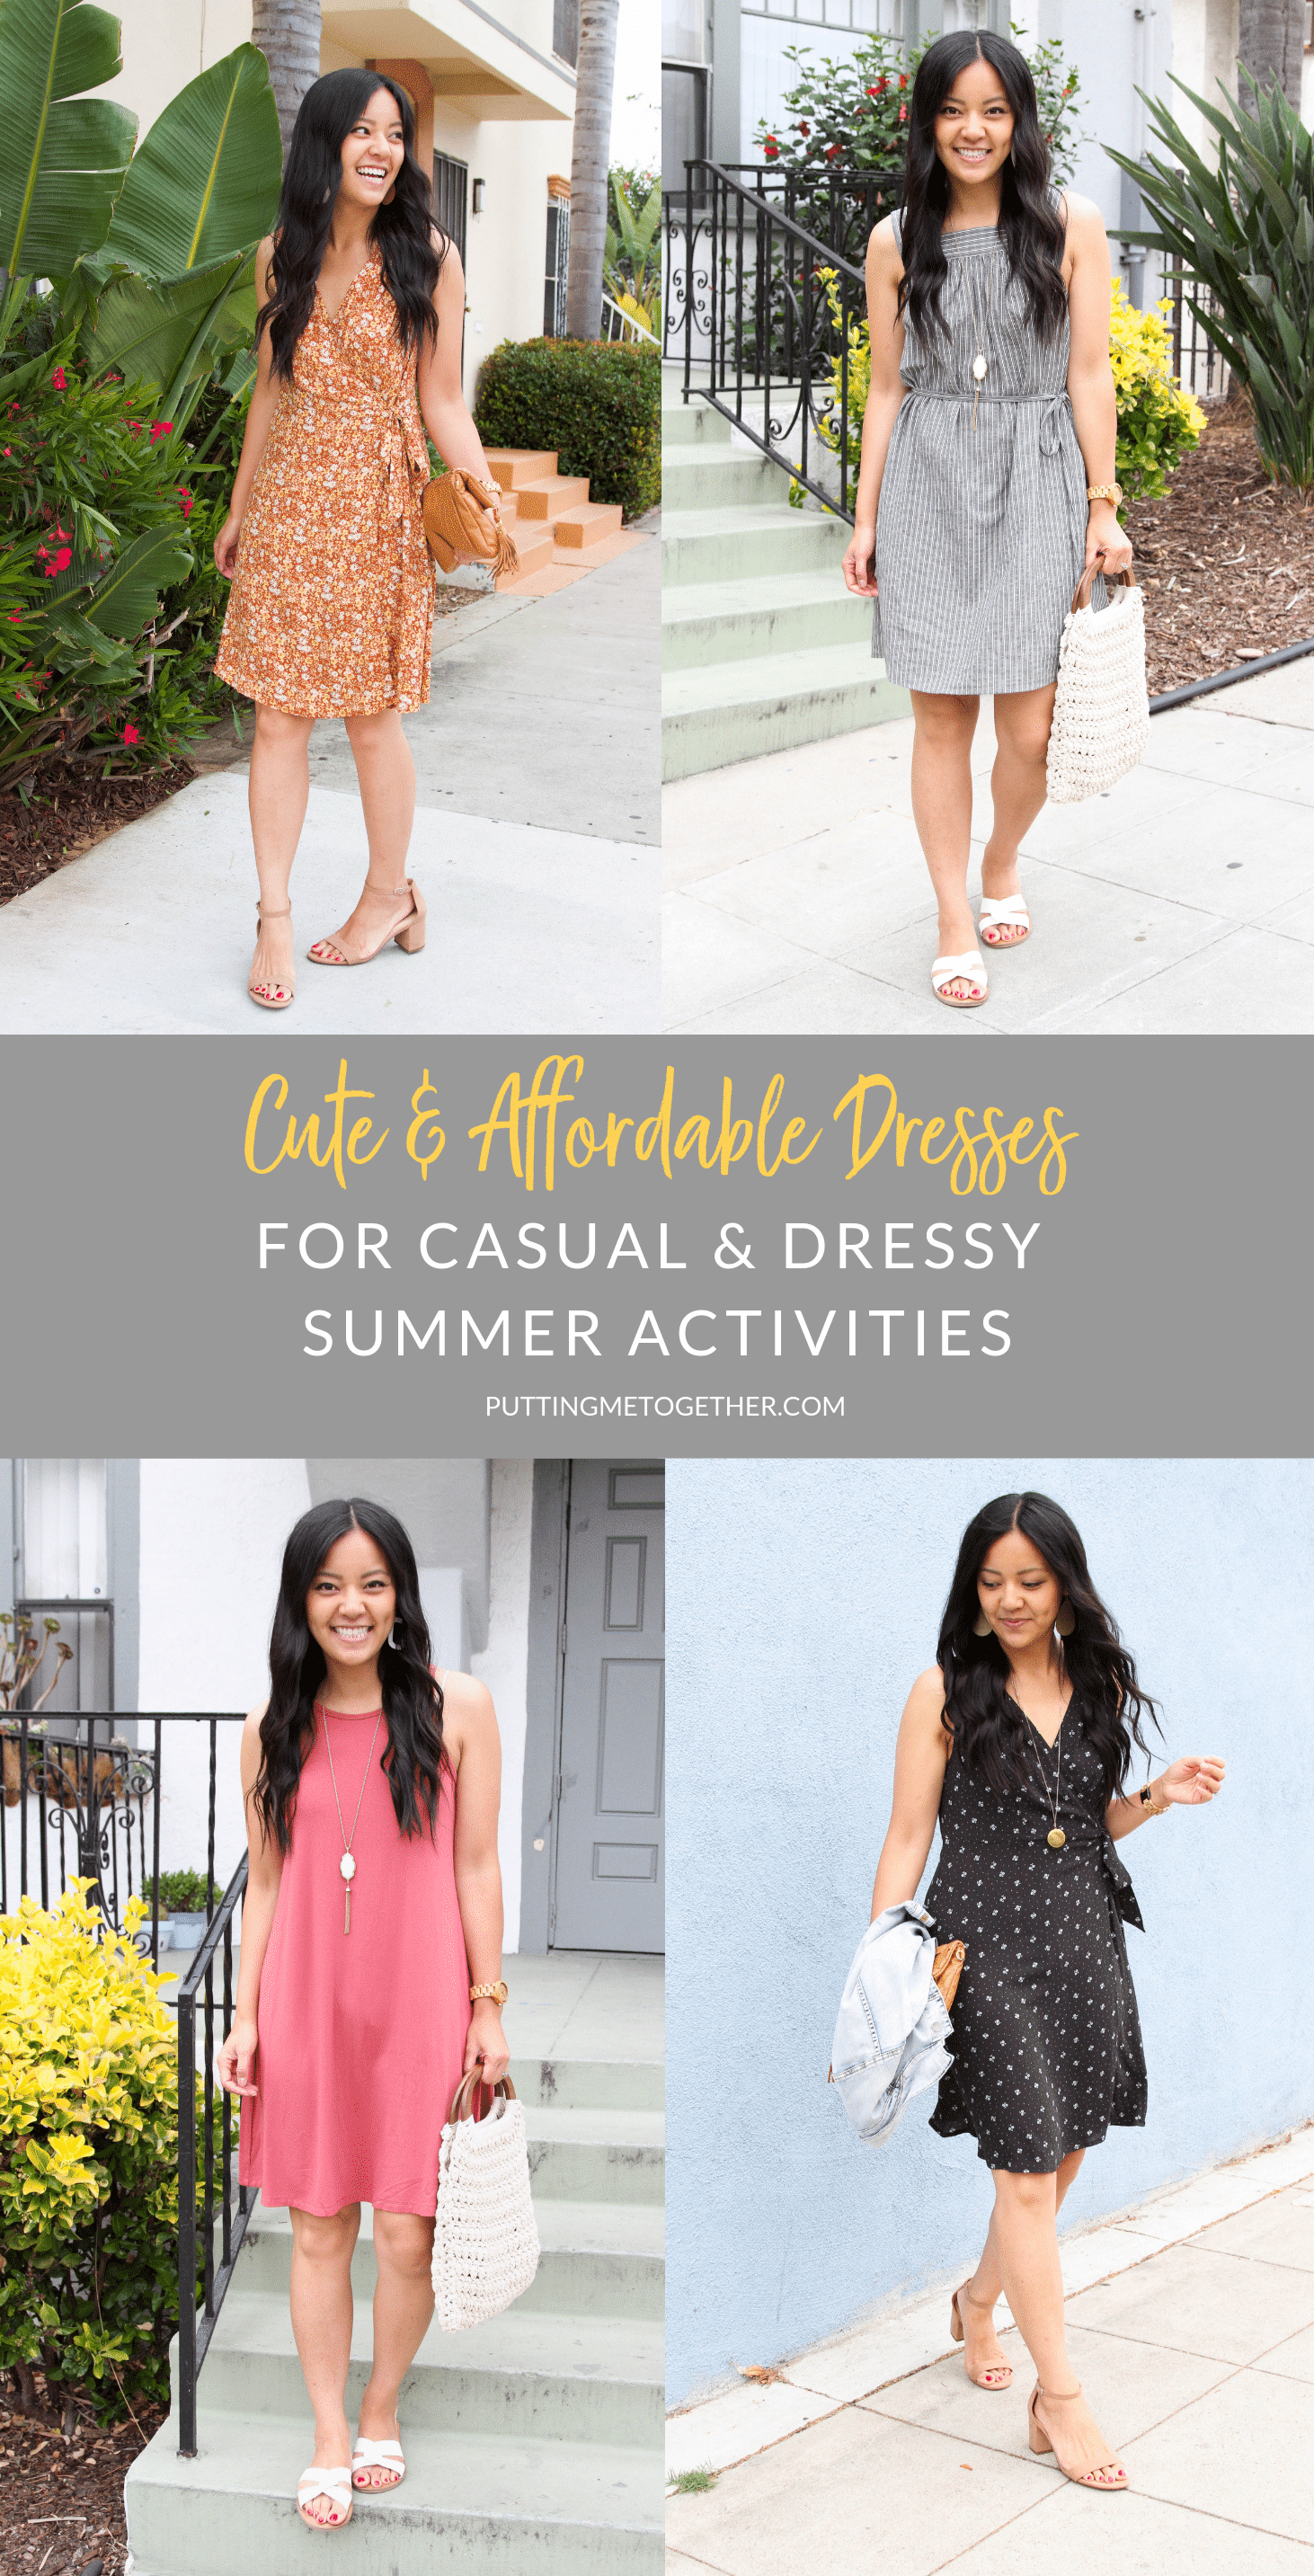 Cute and Affordable Dresses for Summer